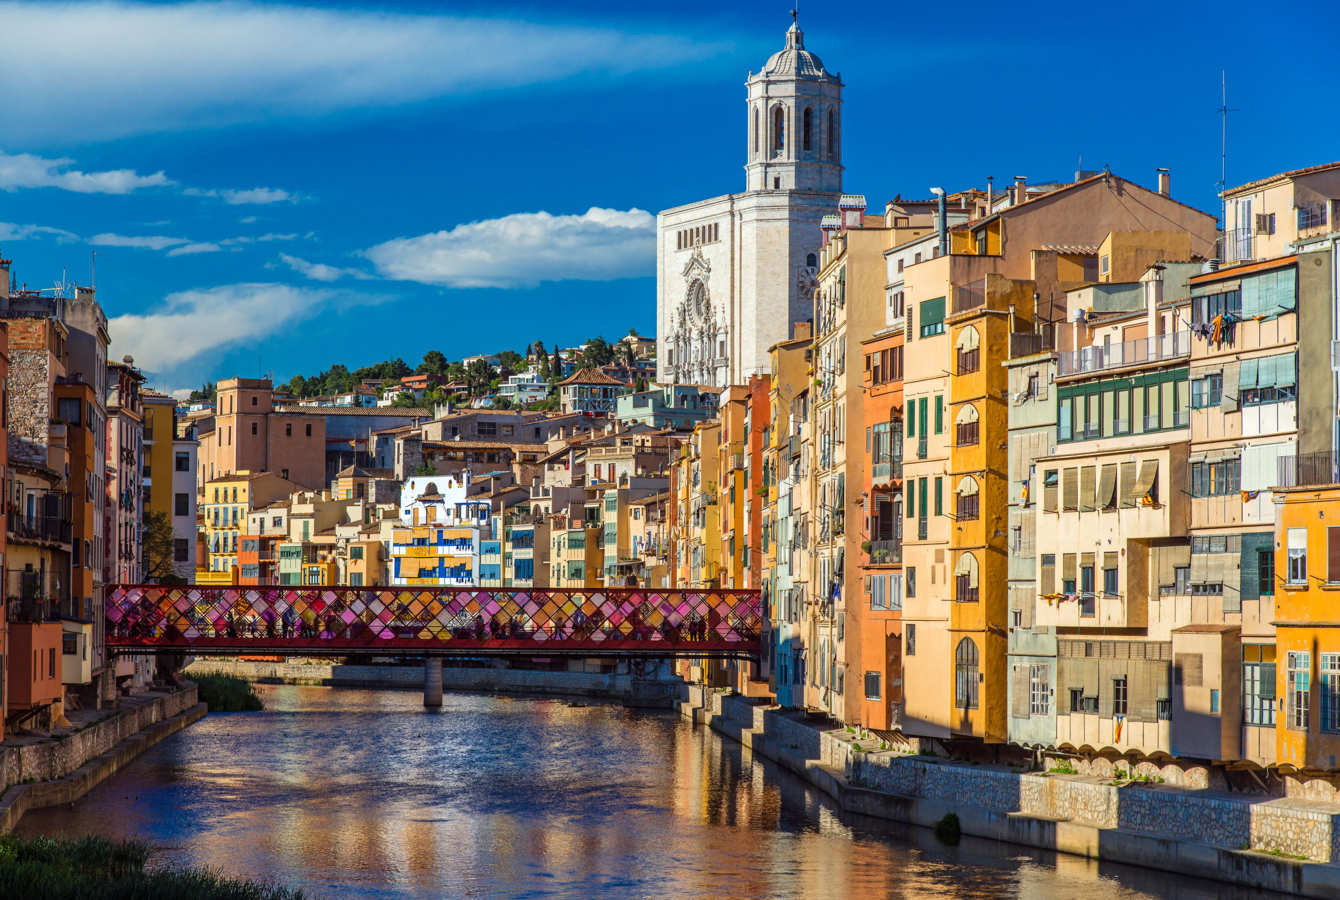 Girona, Sitges, and Other Worthy Day Trips From Barcelona